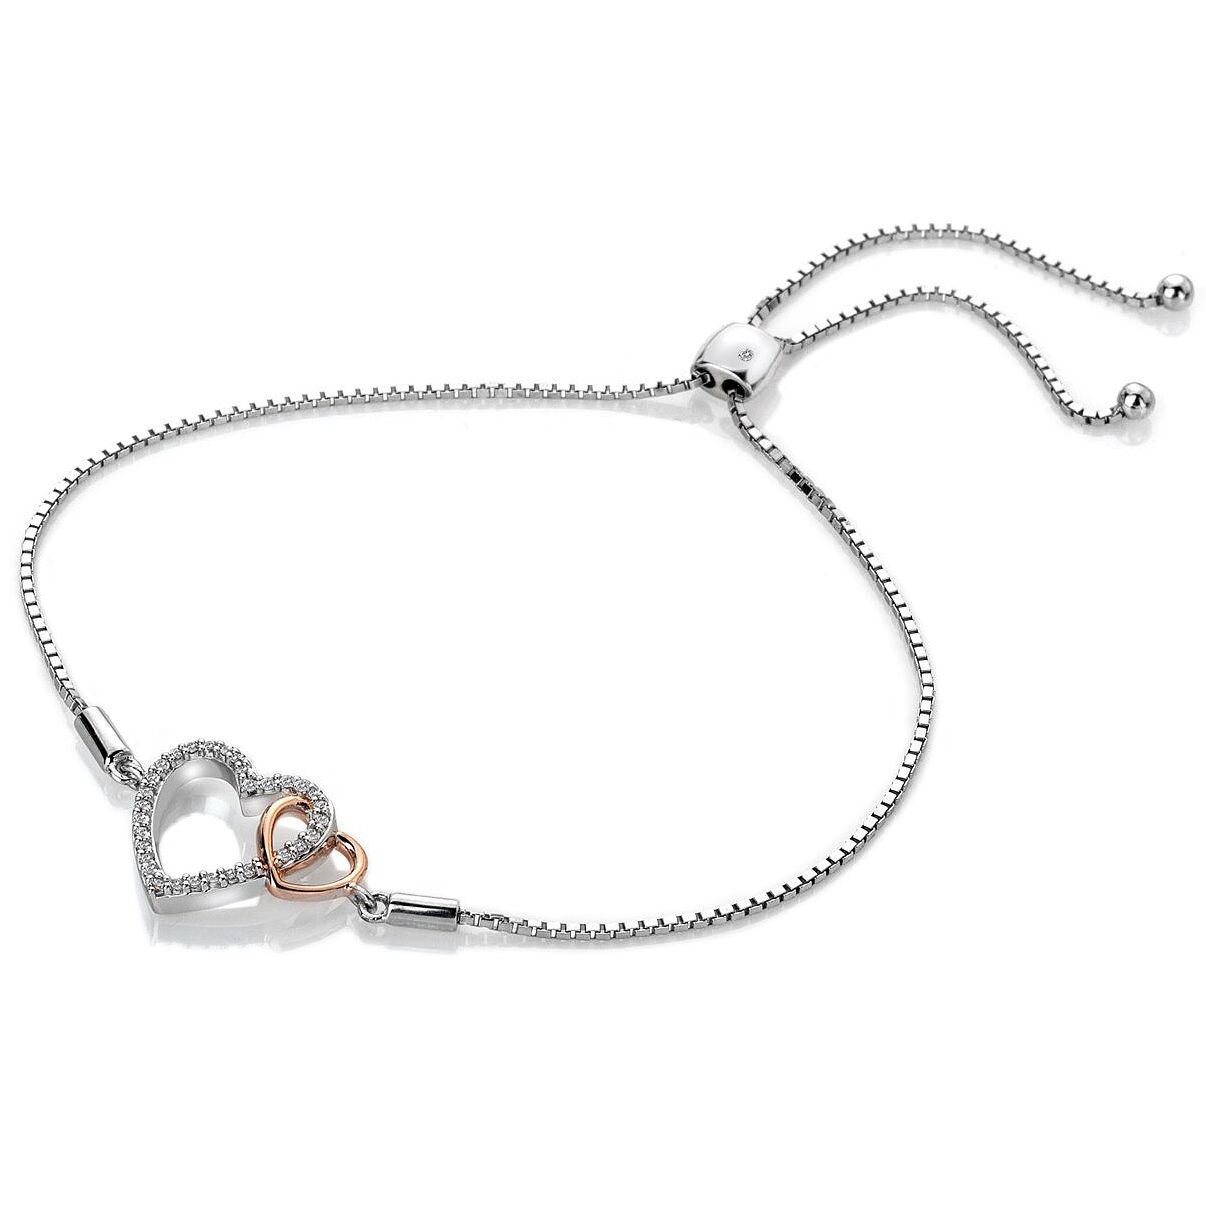 Hot Diamonds Togetherness Two Tone Topaz Hearts Bracelet - Product number 3289990